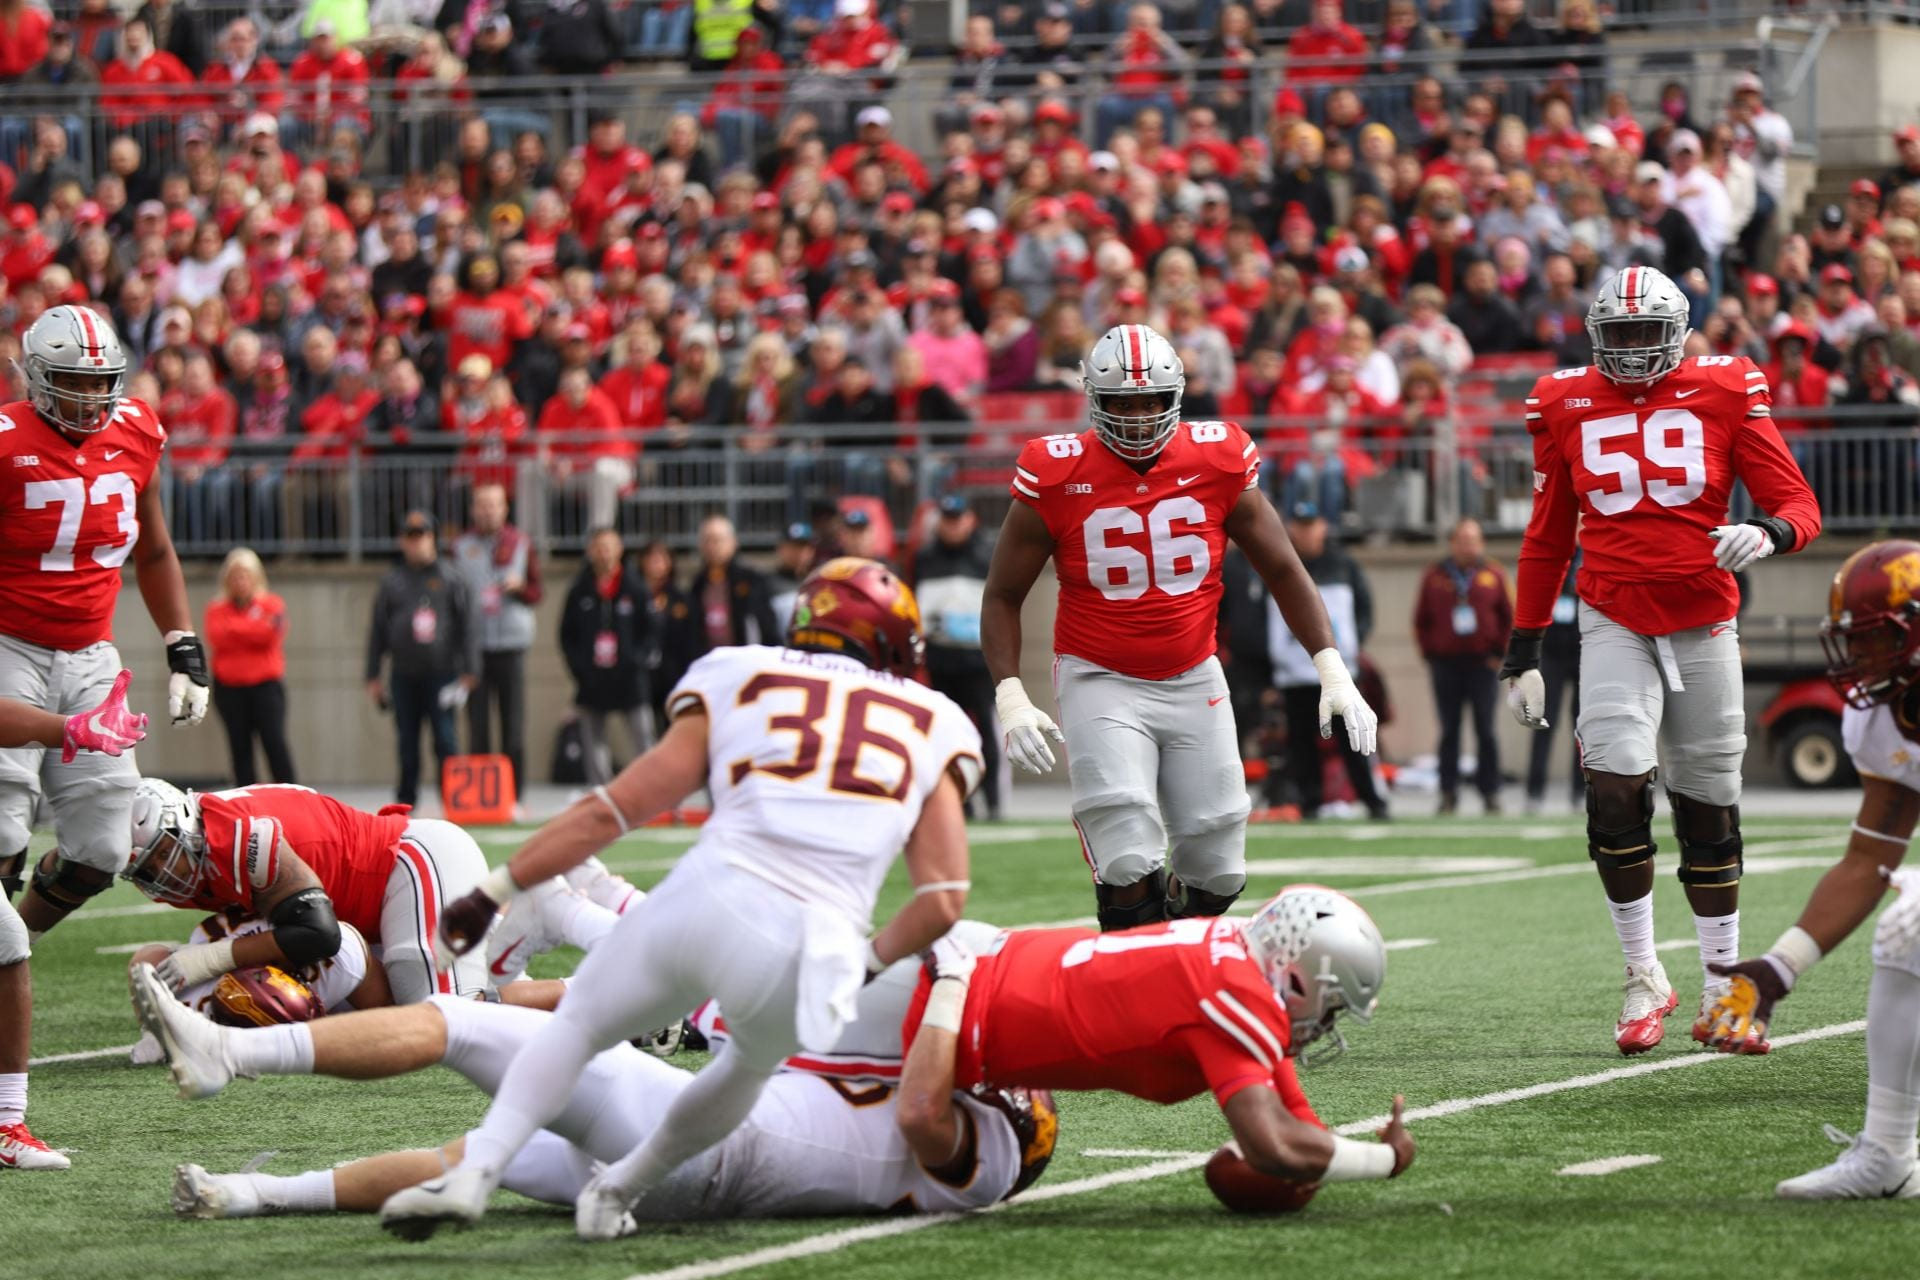 best sneakers 001b7 f3b20 Ohio State redshirt sophomore quarterback Dwayne Haskins (7) gets tackled  after a run during the first quarter of the game against Minnesota on Oct.  13.